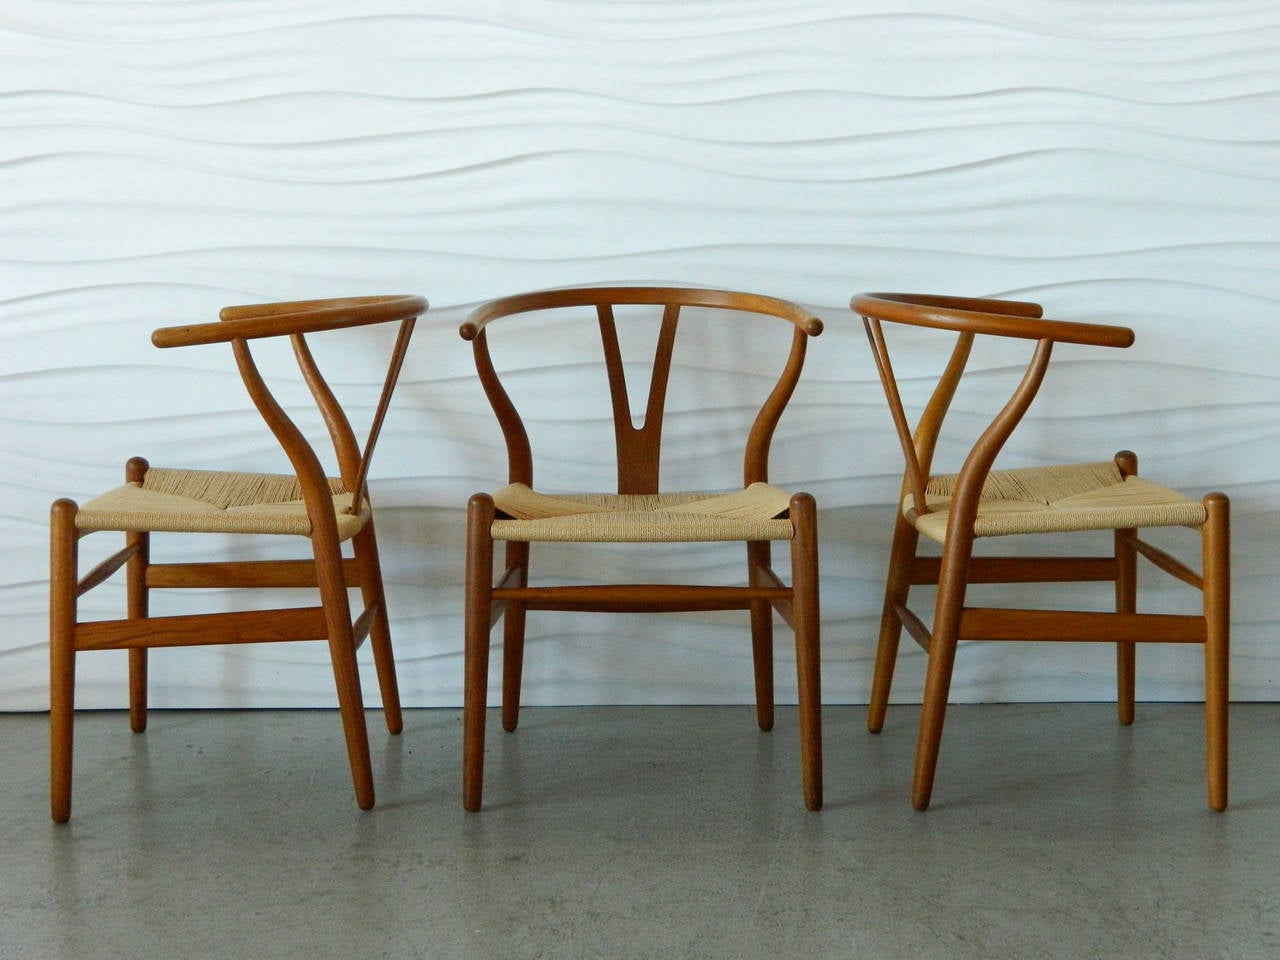 wishbone chairs standard furniture fairhaven rustic two tone table and chair set hans wegner teak at 1stdibs